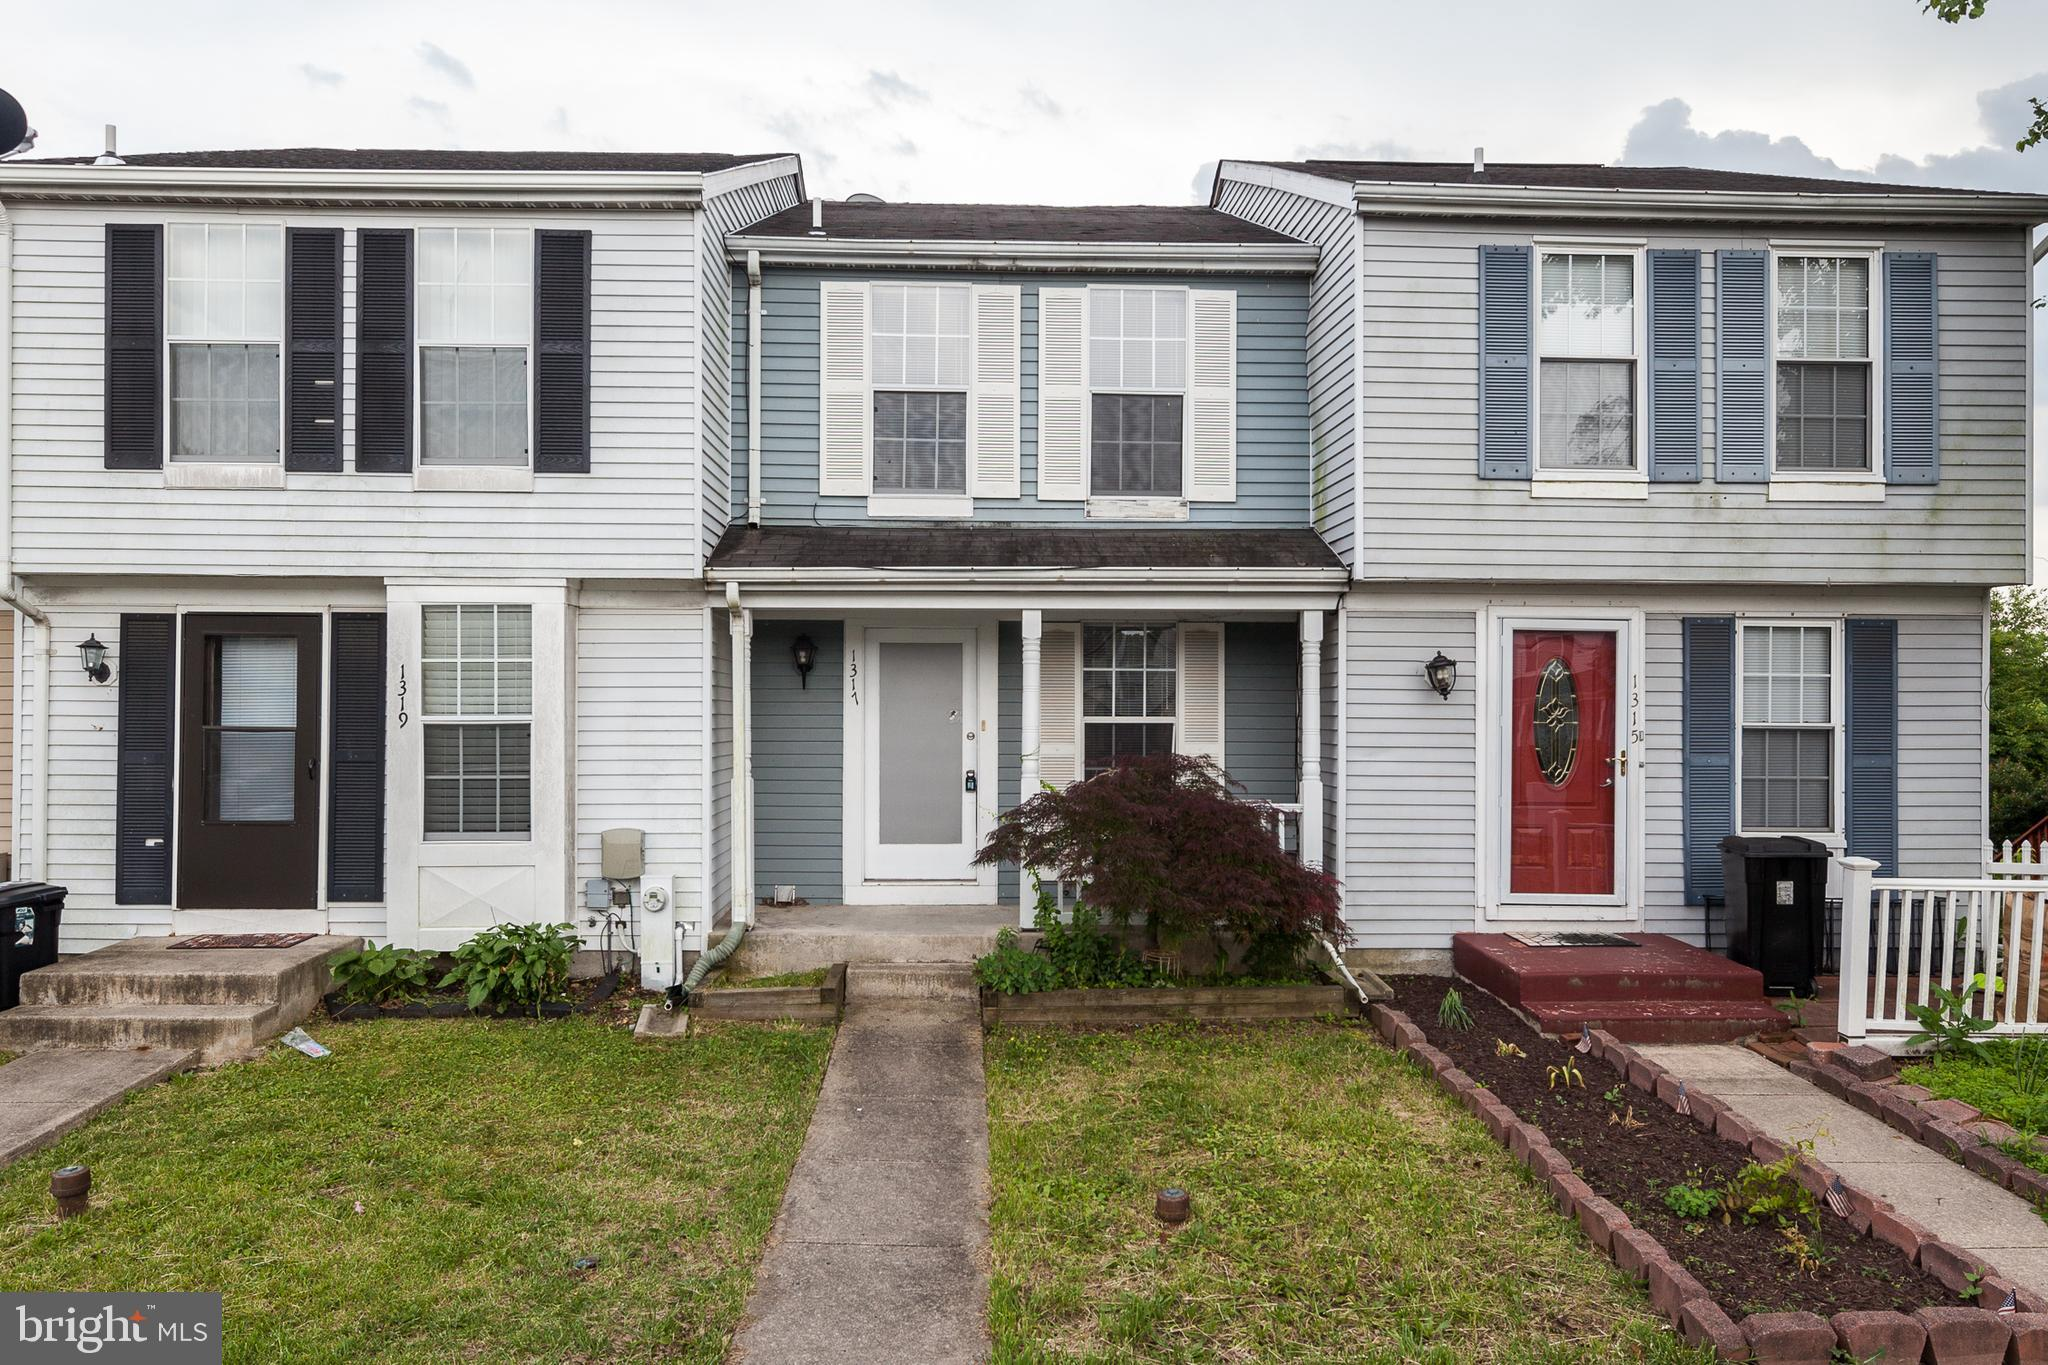 Two Bedroom Woodbridge Townhouse, Large rooms, 3 finished levels, large deck, spacious kitchen with new appliances. New roof, new flooring, and bathroom updates. Move in ready. Shows well. Close to 40 and 95.